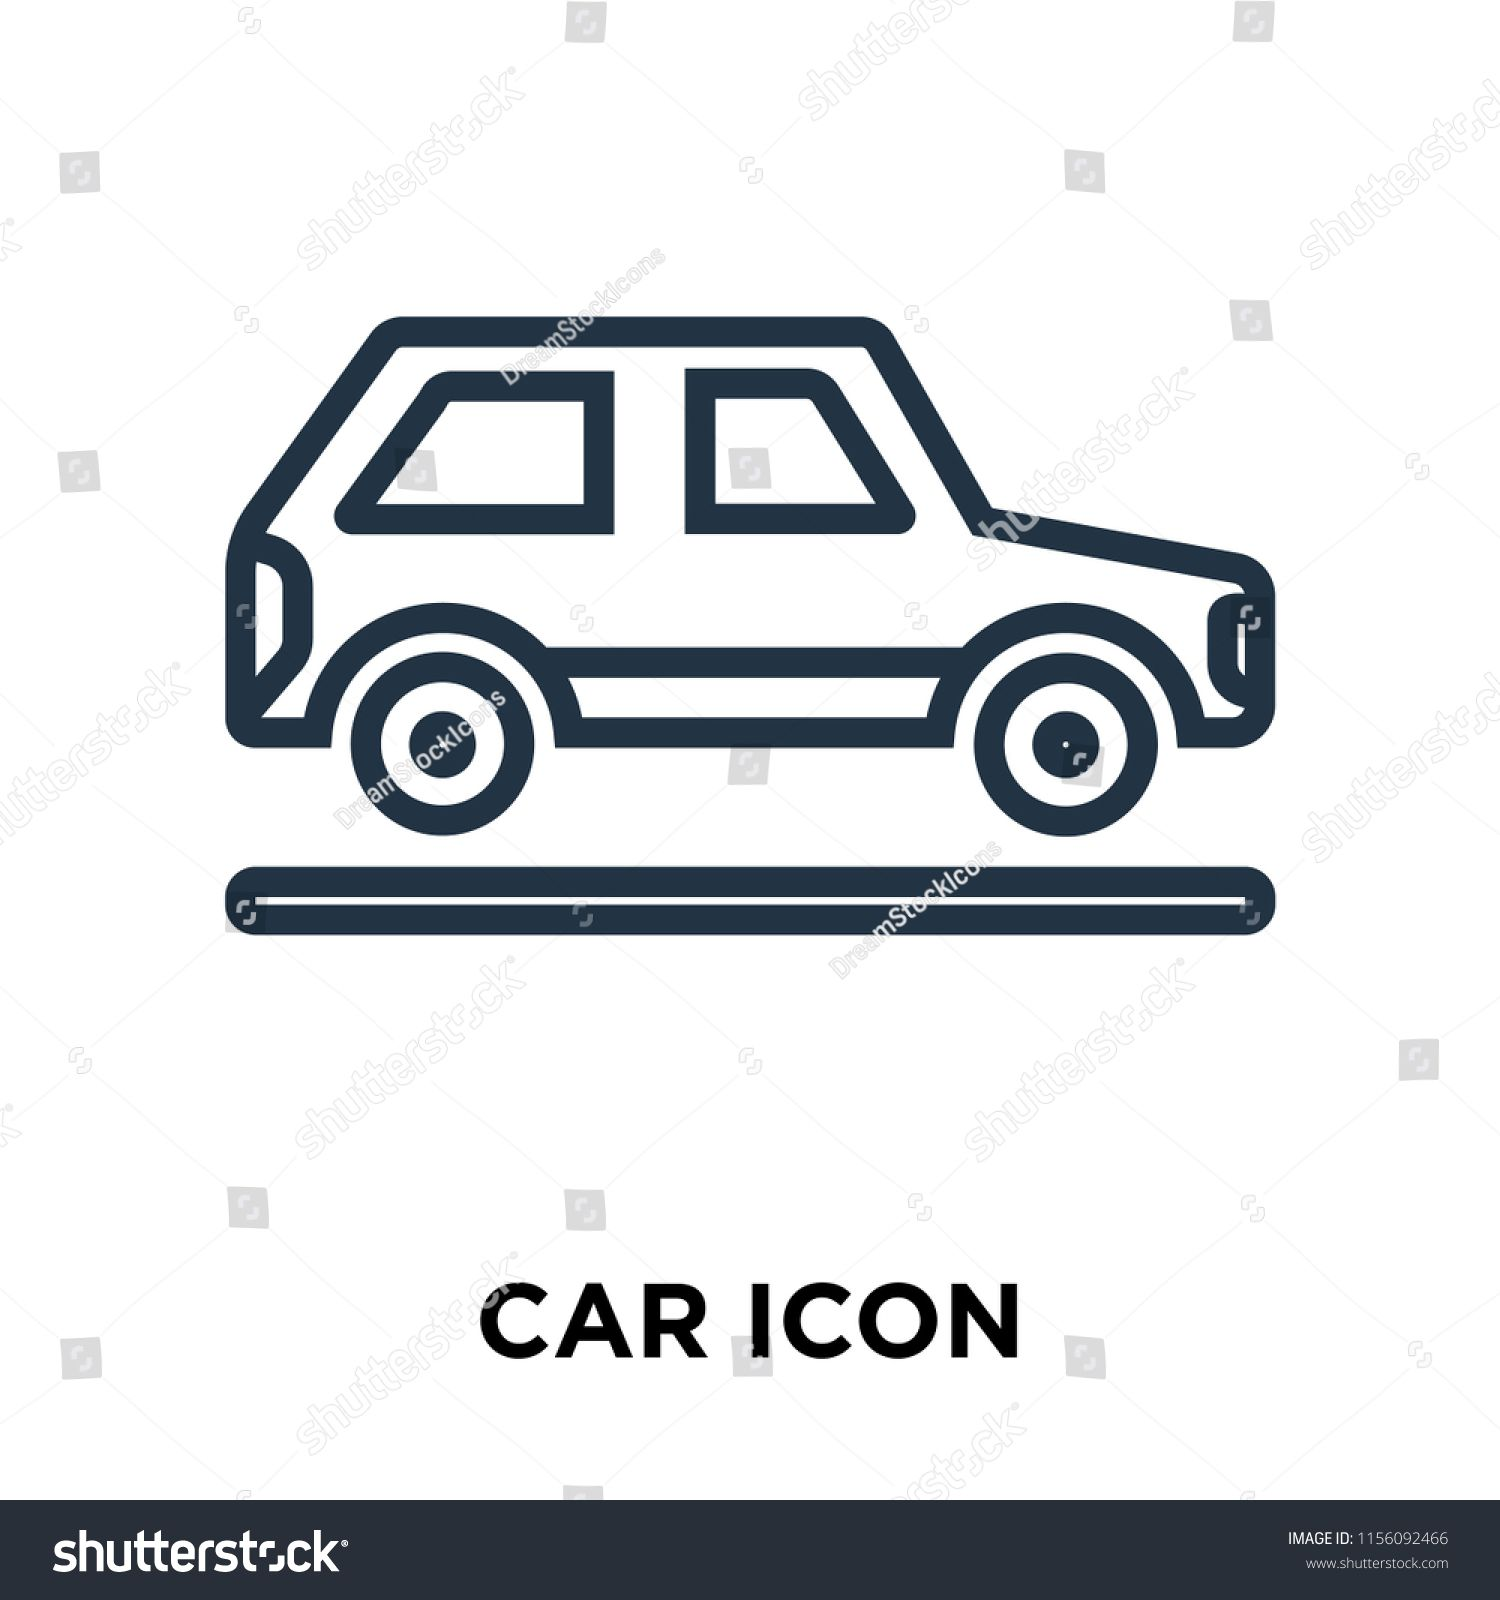 Car Icon Vector Isolated On White Background Car Transparent Sign